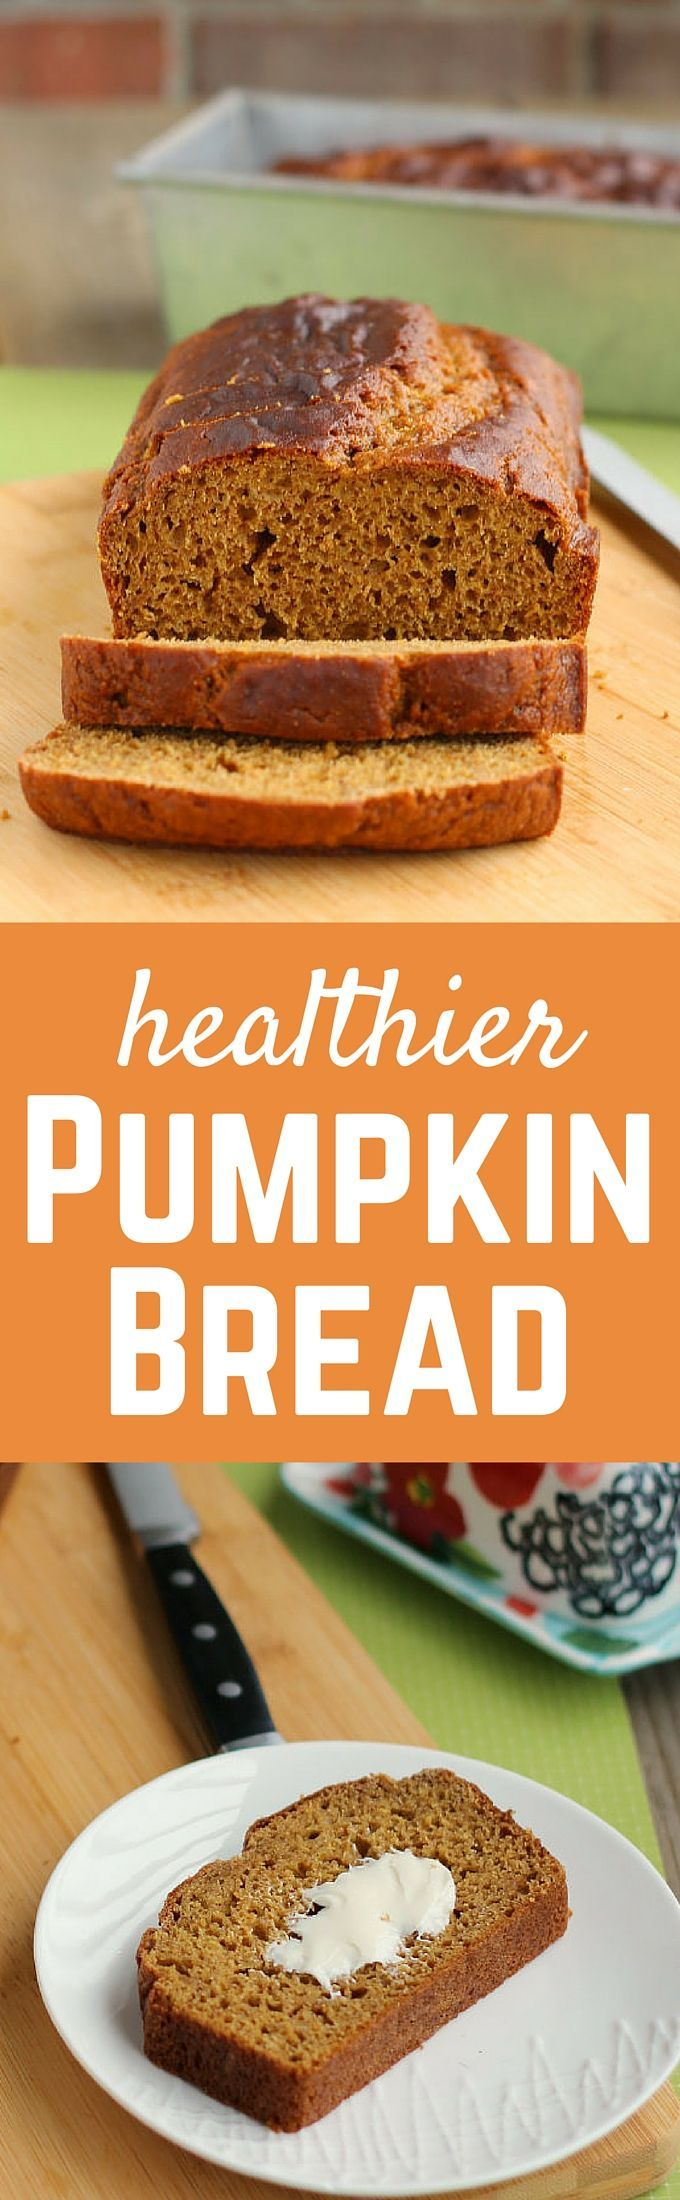 healthier pumpkin bread recipe healthy pumpkin bread